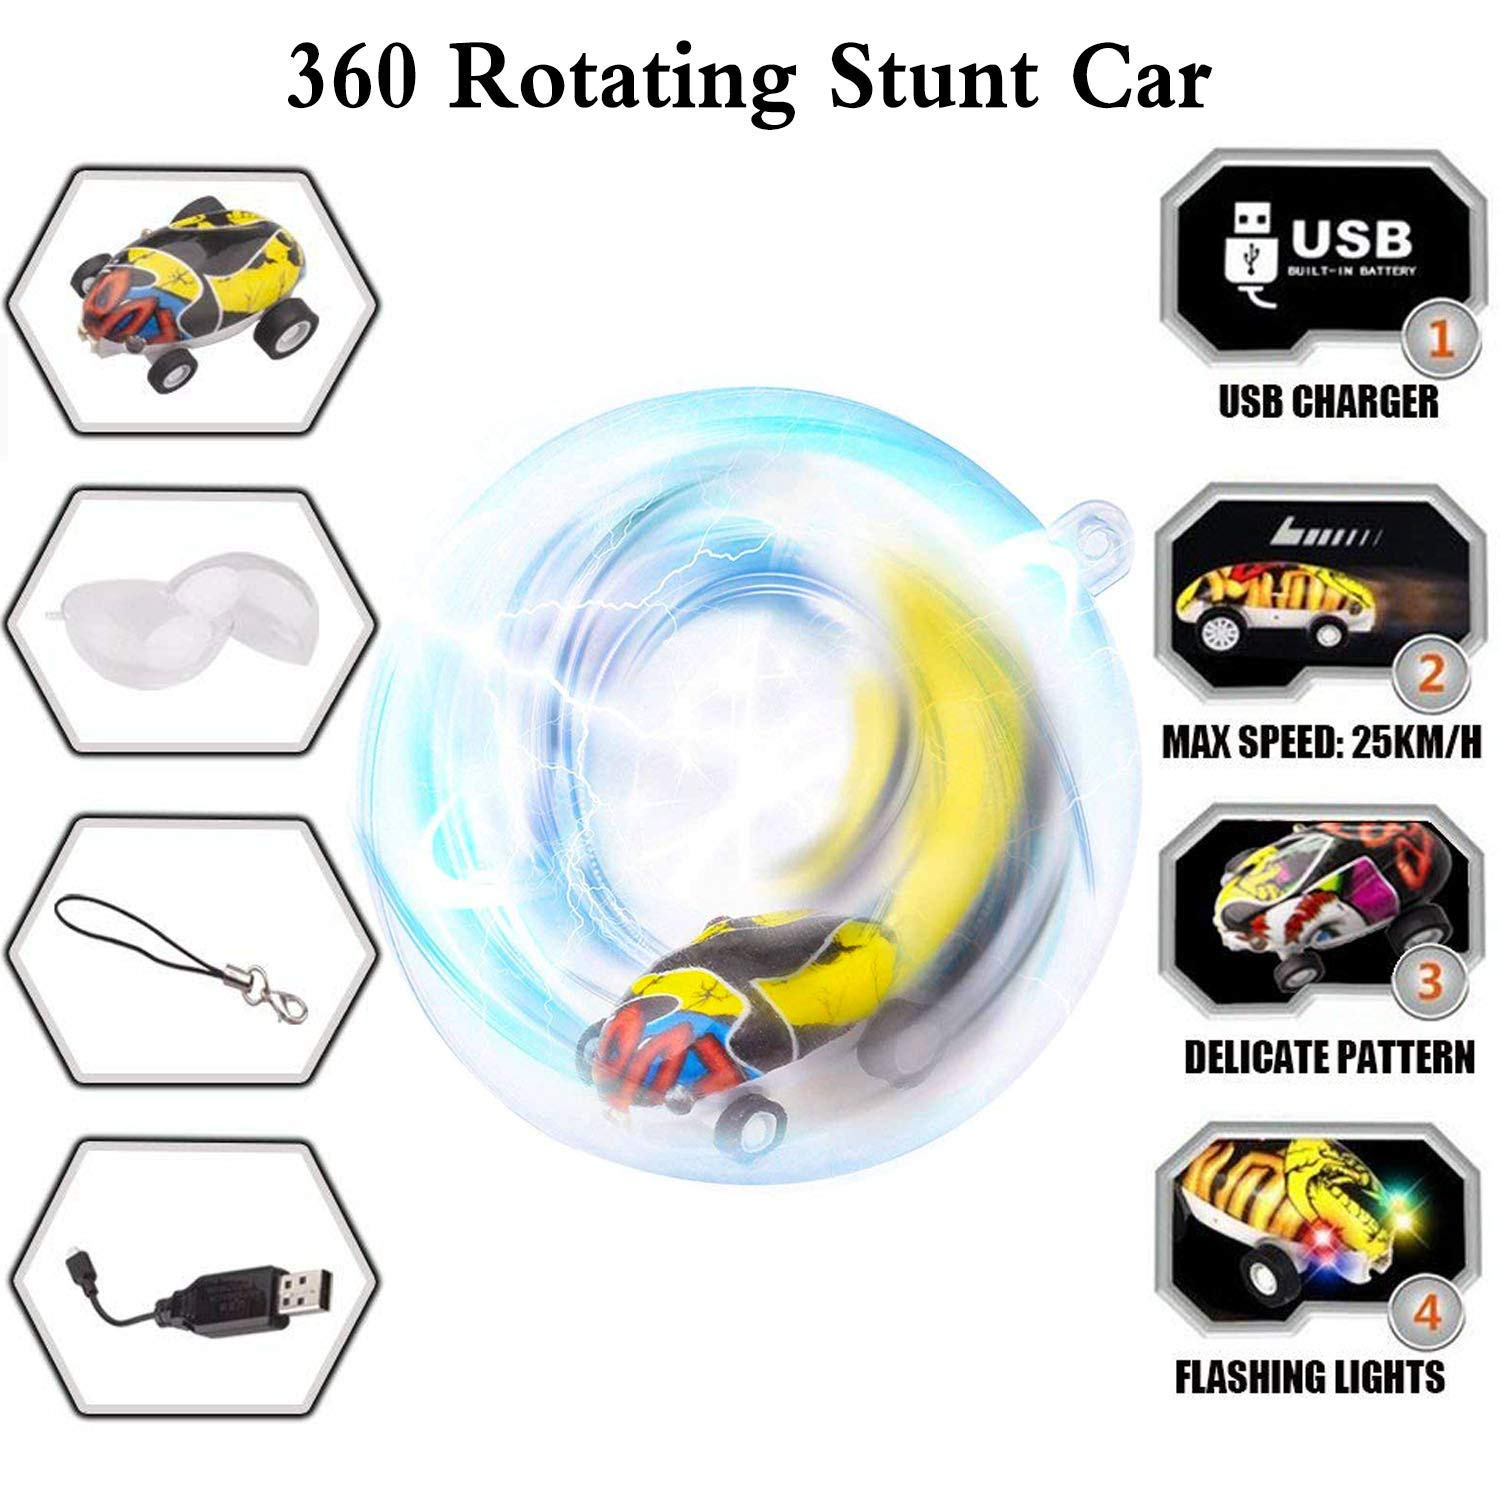 (Best Gift!)MINI 360 ROTATING LASER CHARIOT HIGH-SPEED CAR TOYS